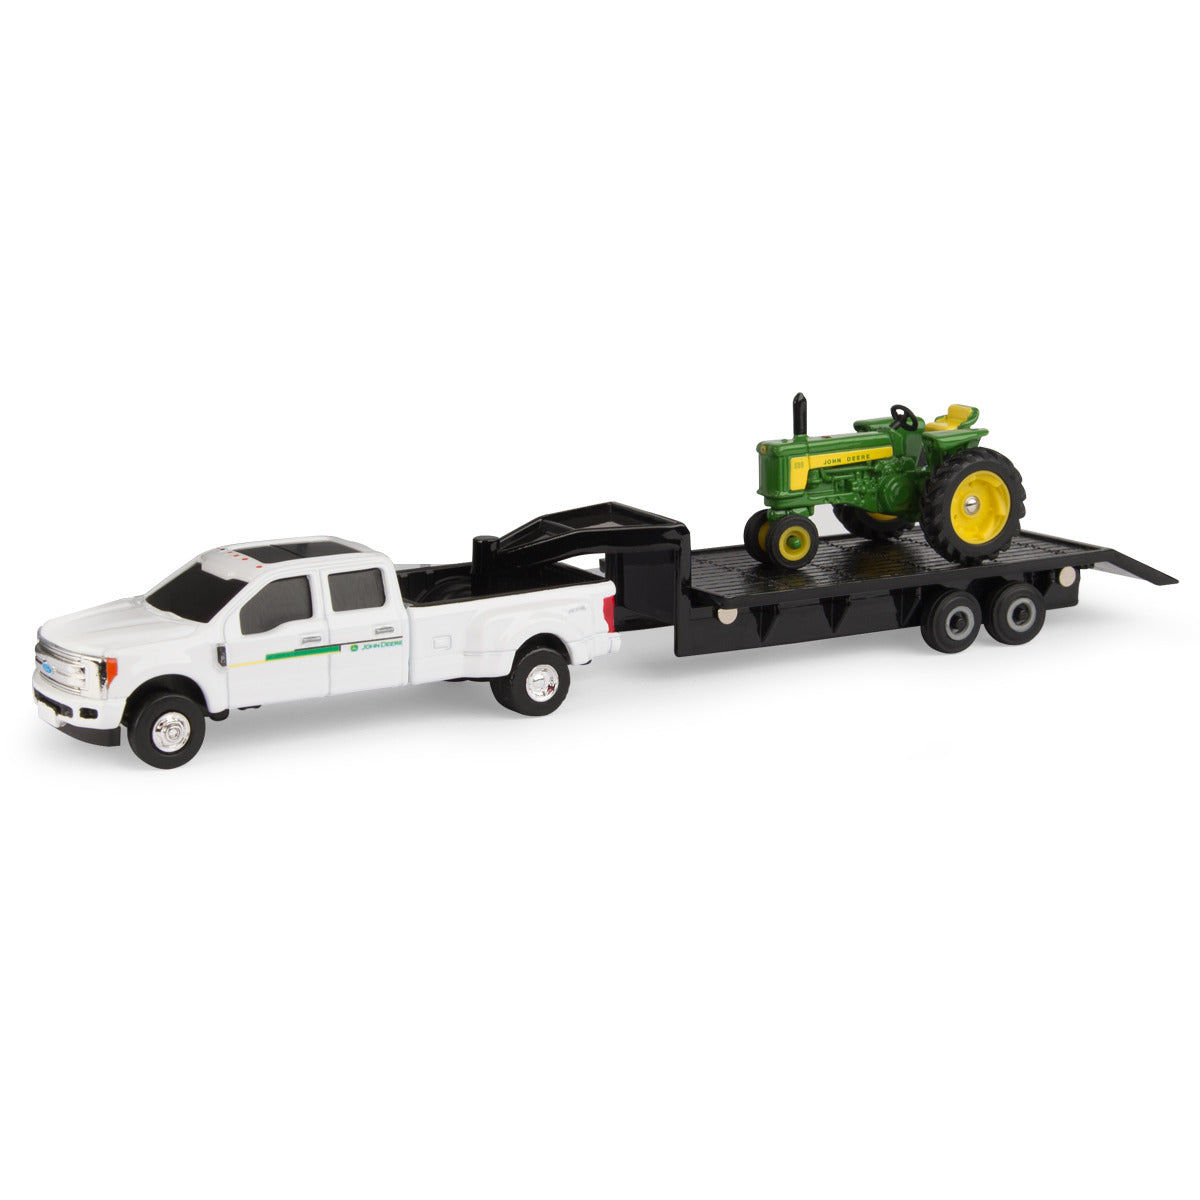 1/64 John Deere 530 Tractor with trailer and Ford truck Toy - LP68816